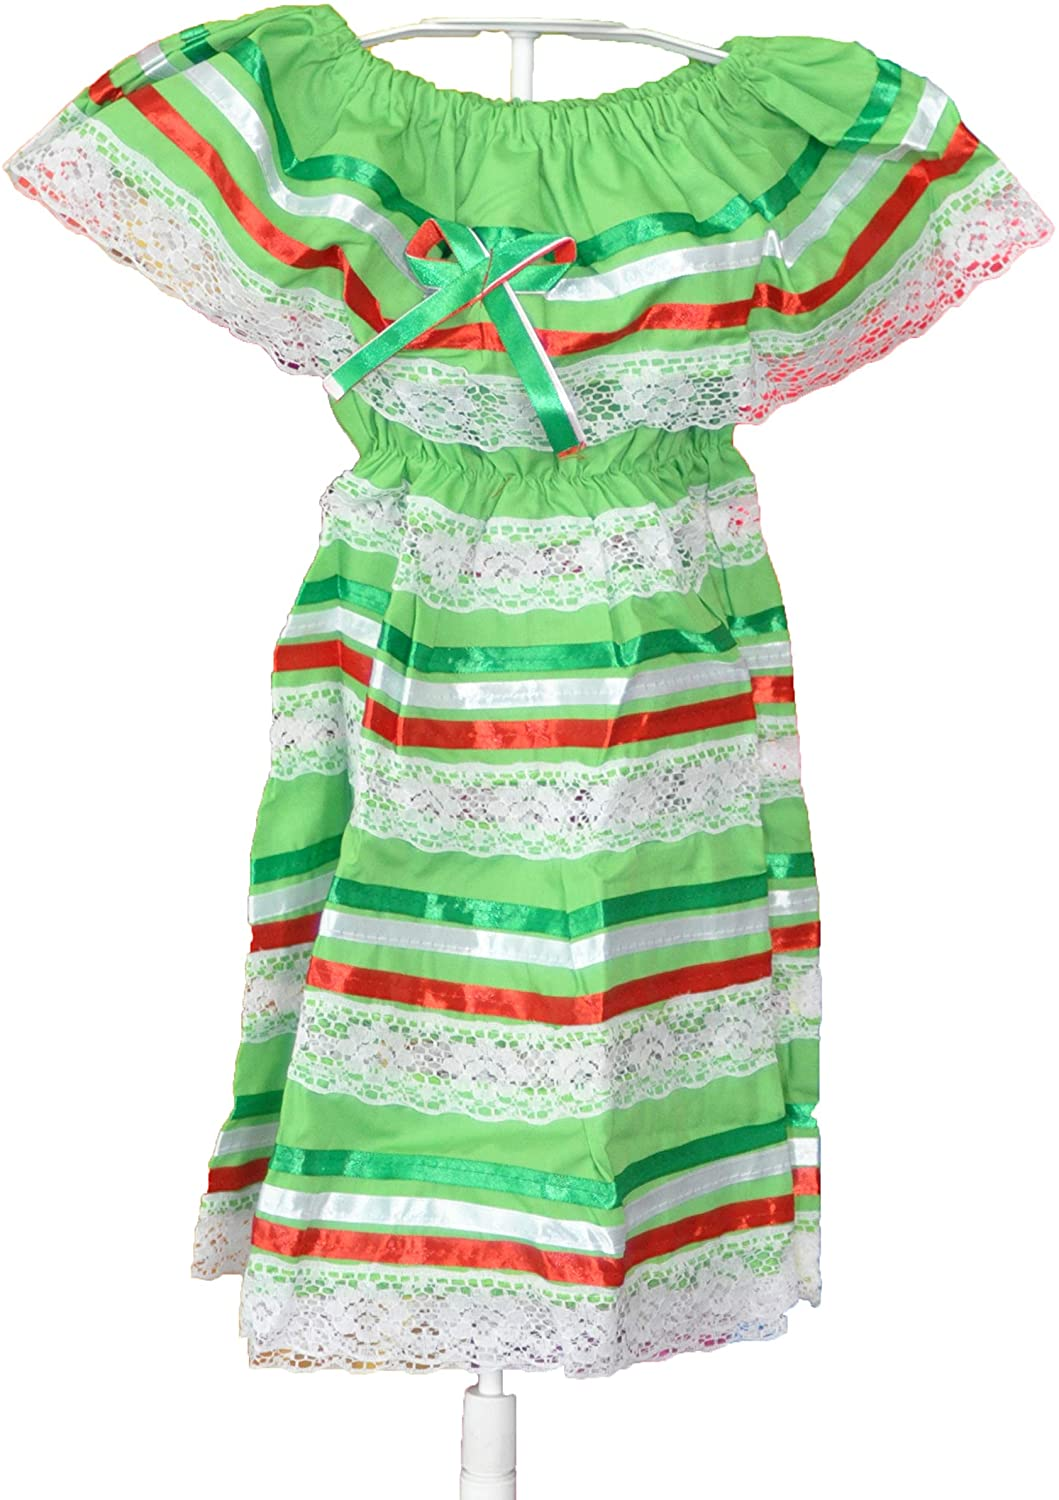 Mexican Child Dress Coco Theme Party Peasent Dress Hippie Dress (Lime Green) 12 to 24 Months